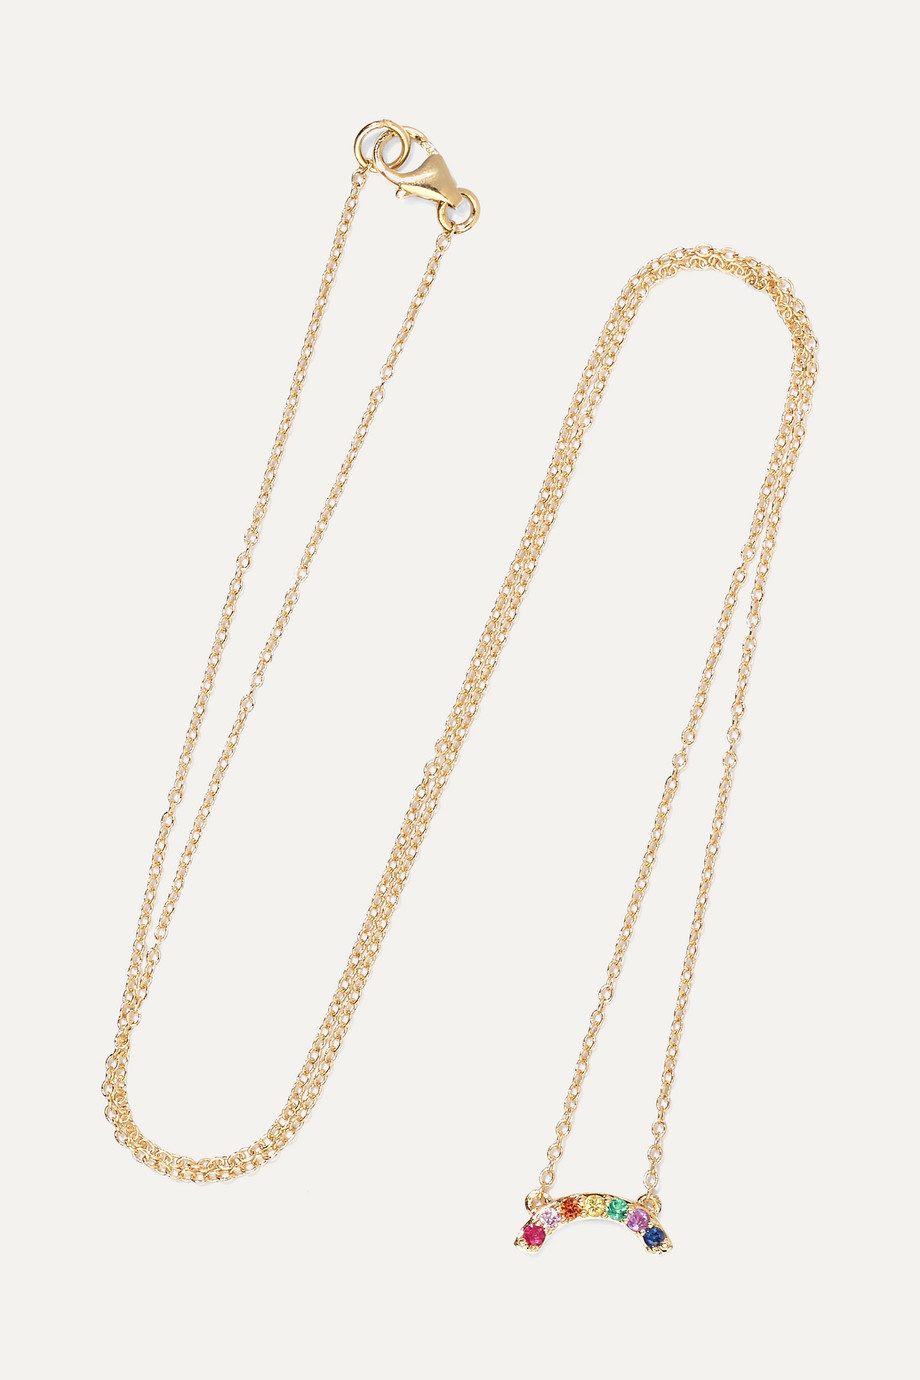 ANDREA FOHRMAN 14-karat gold multi-stone necklace